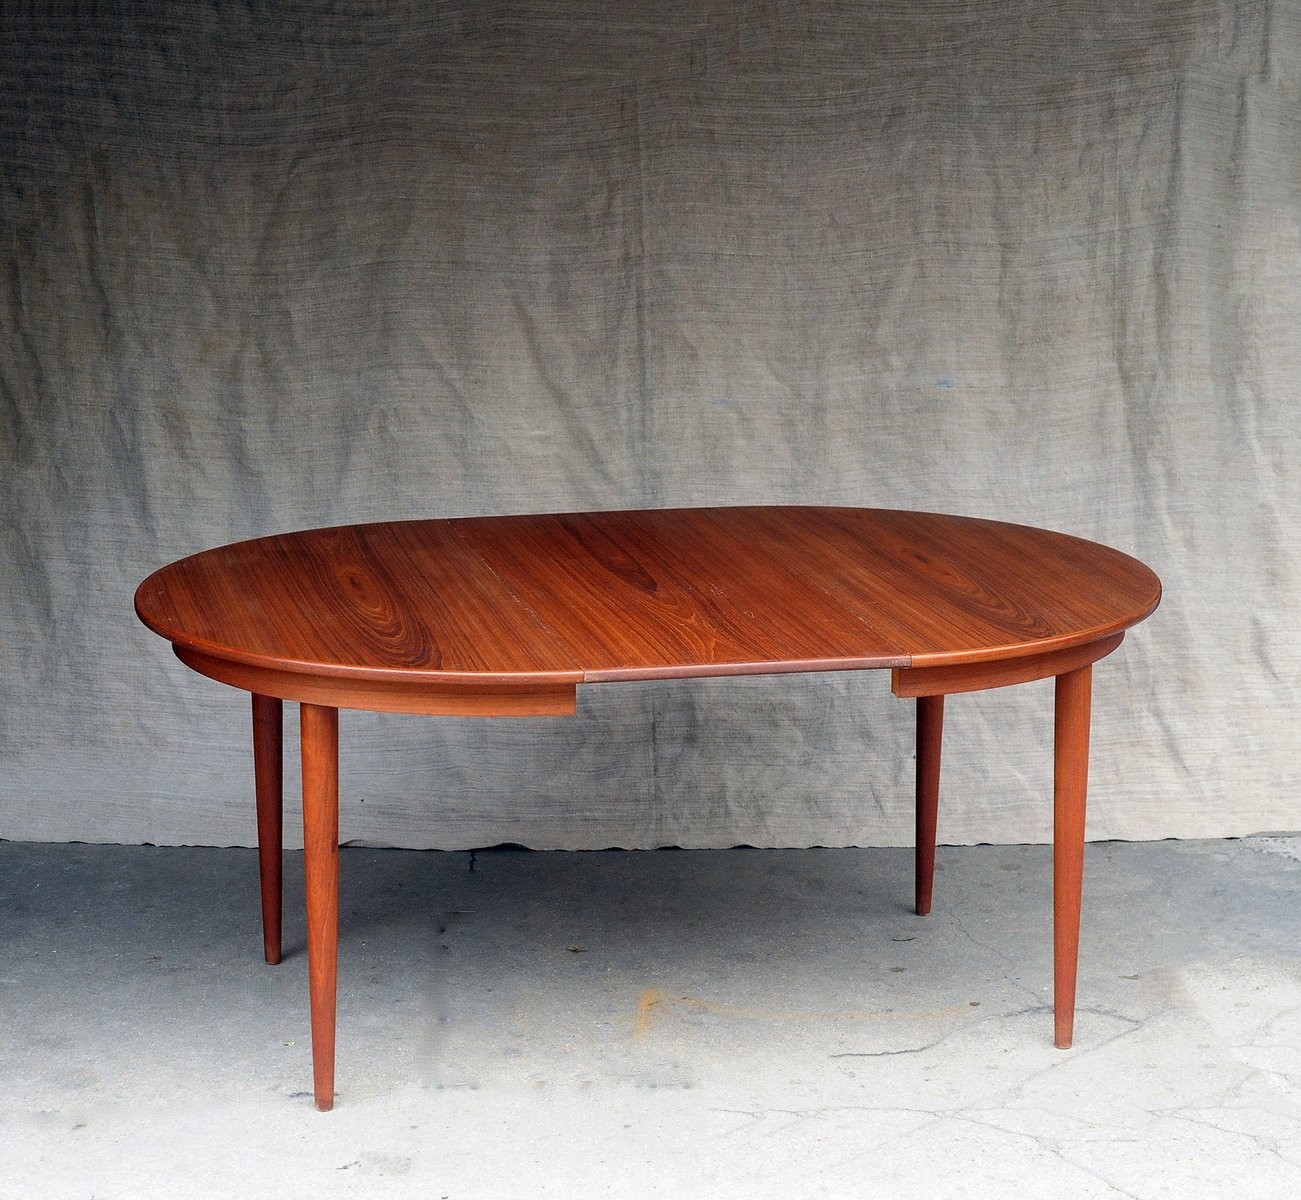 Table ronde extensible mid century scandinave en vente sur for Table ronde extensible style scandinave